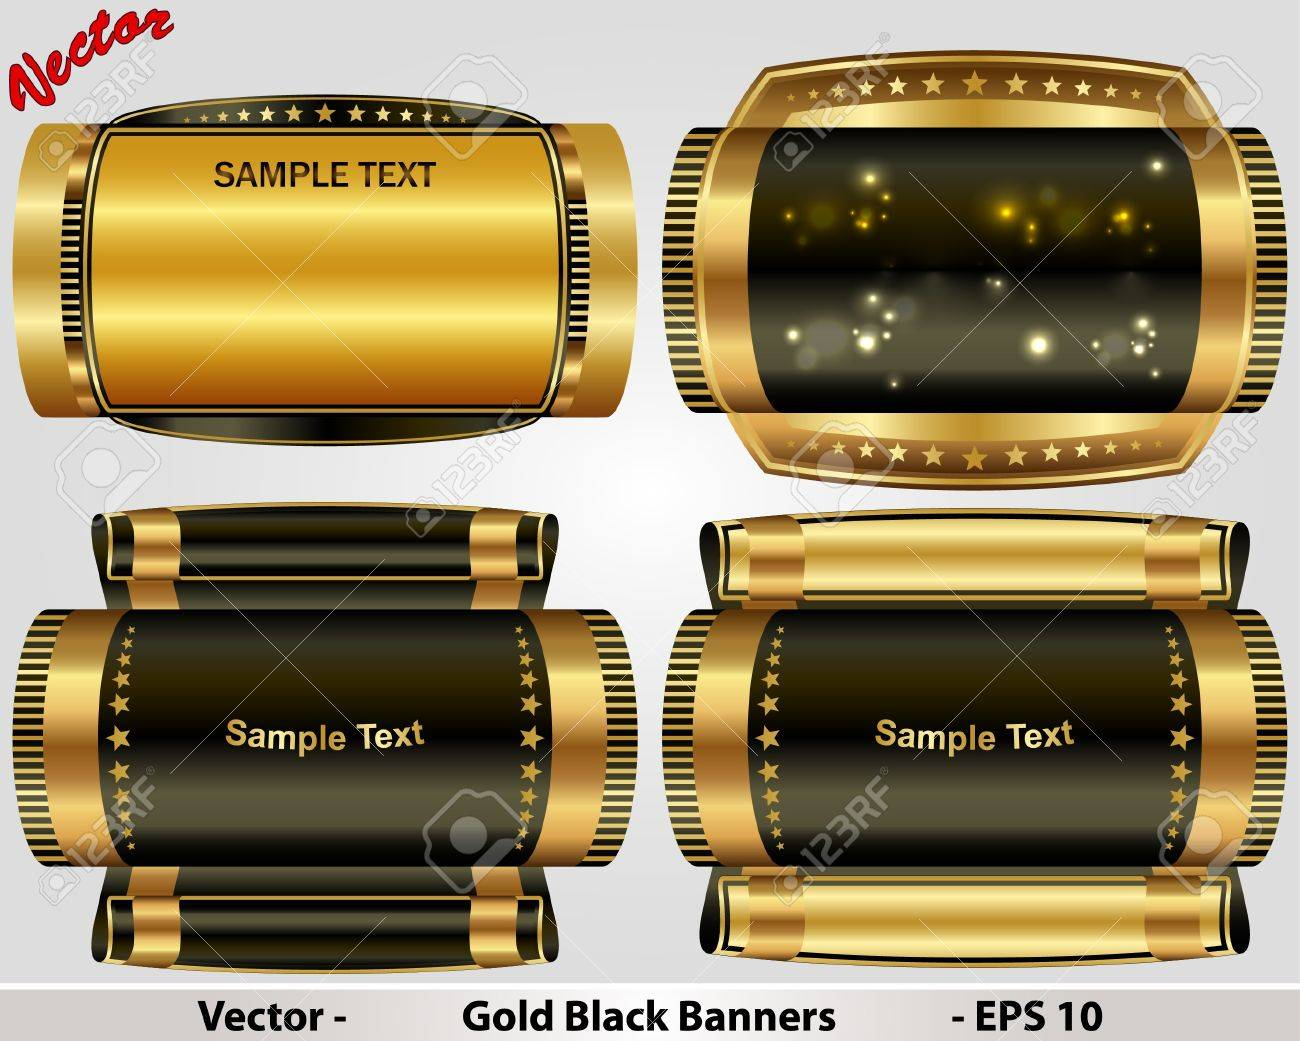 Gold Black Banners Stock Vector - 15499930